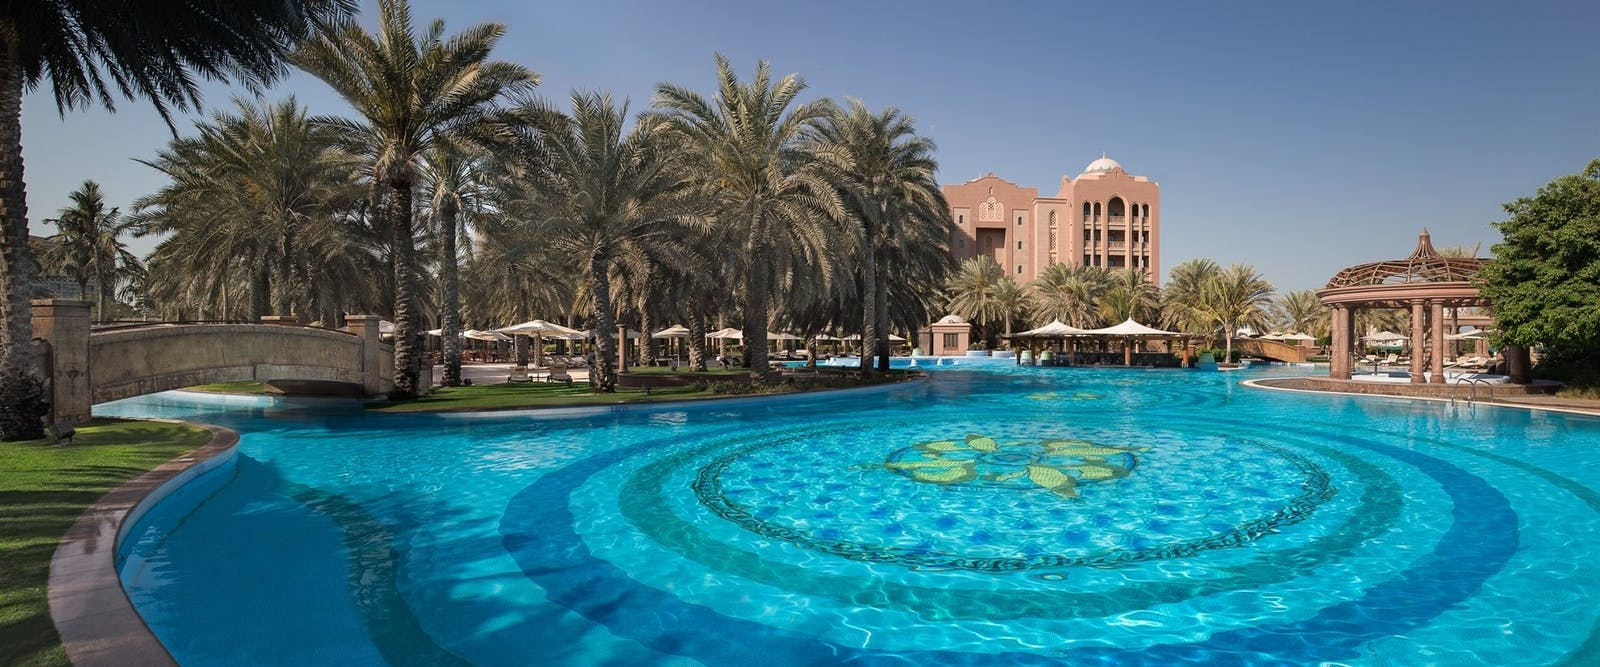 Swimming pool east wing at Emirates Palace, Abu Dhabi